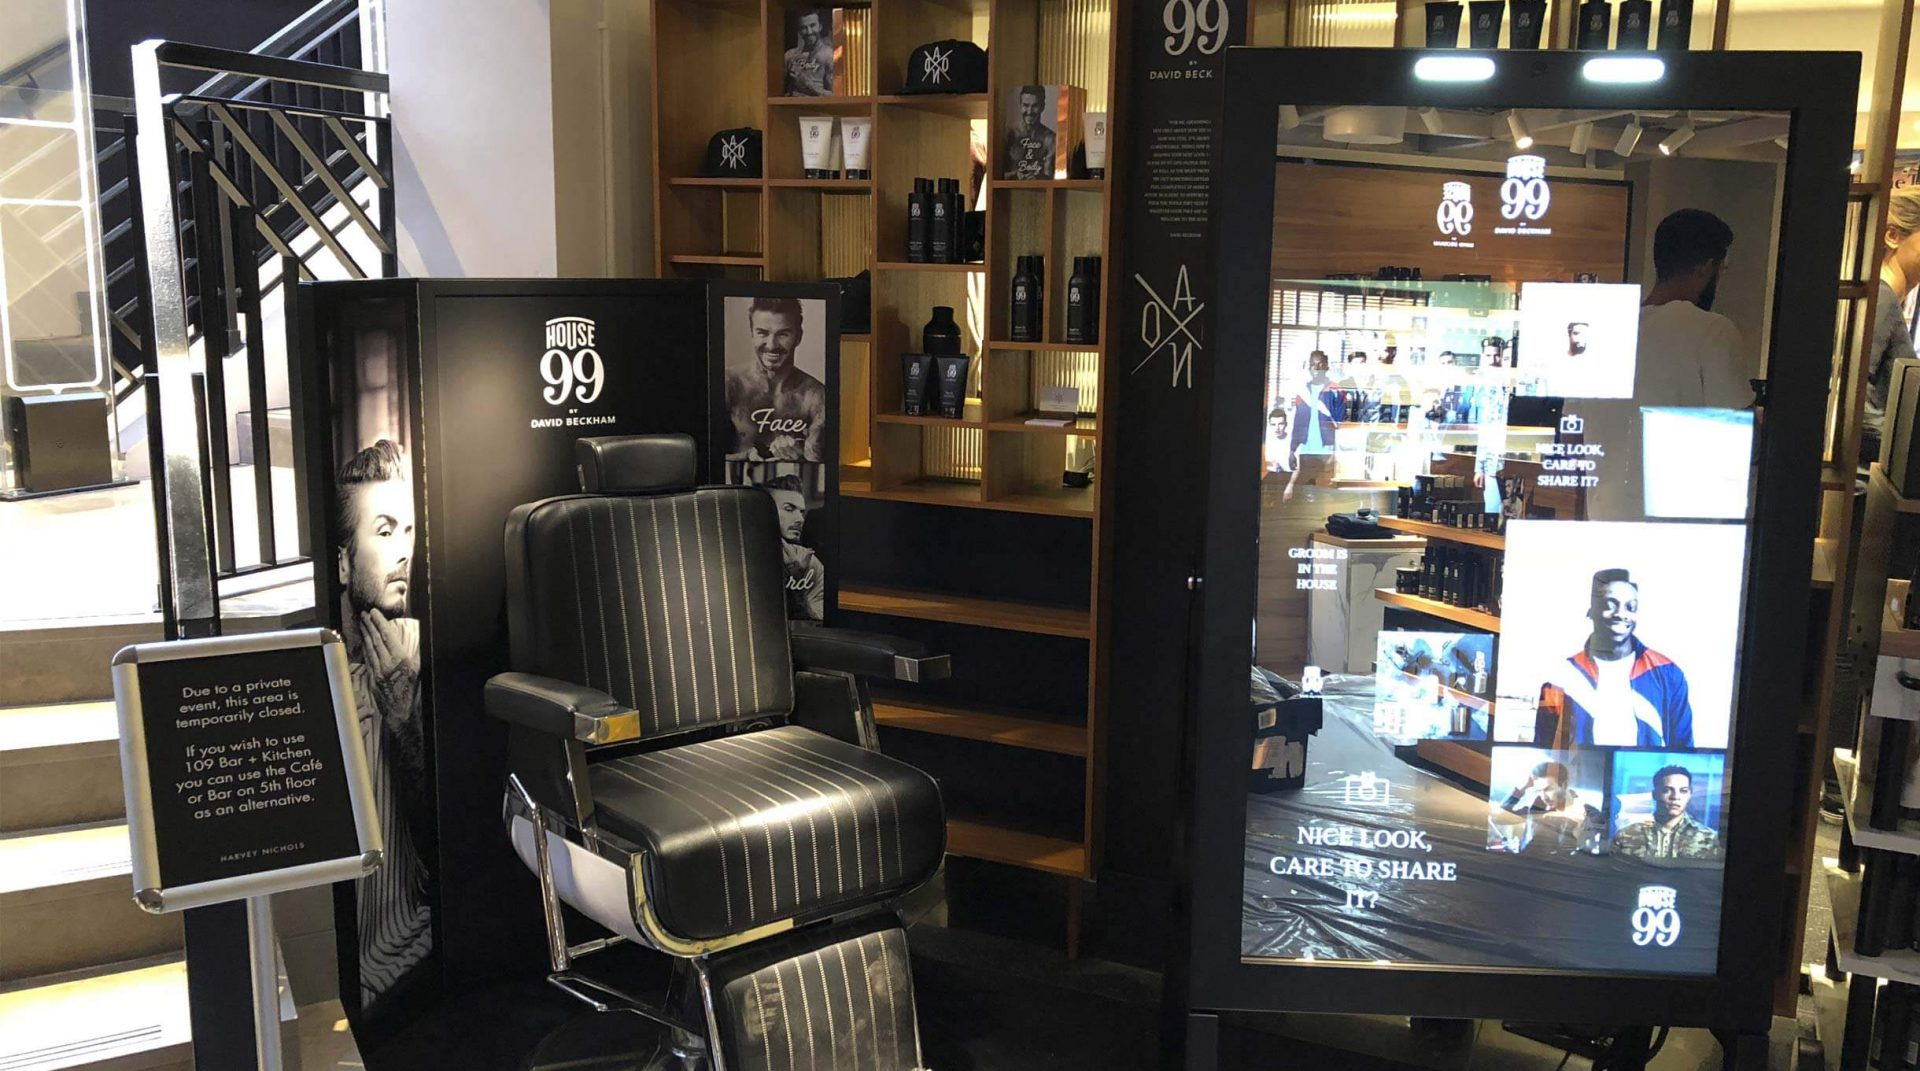 During The Launch Of Brand Edge Retail Installed A Live Window Display Where Gentlemen Can Receive Range Treatments To Ensure Theyre Looking